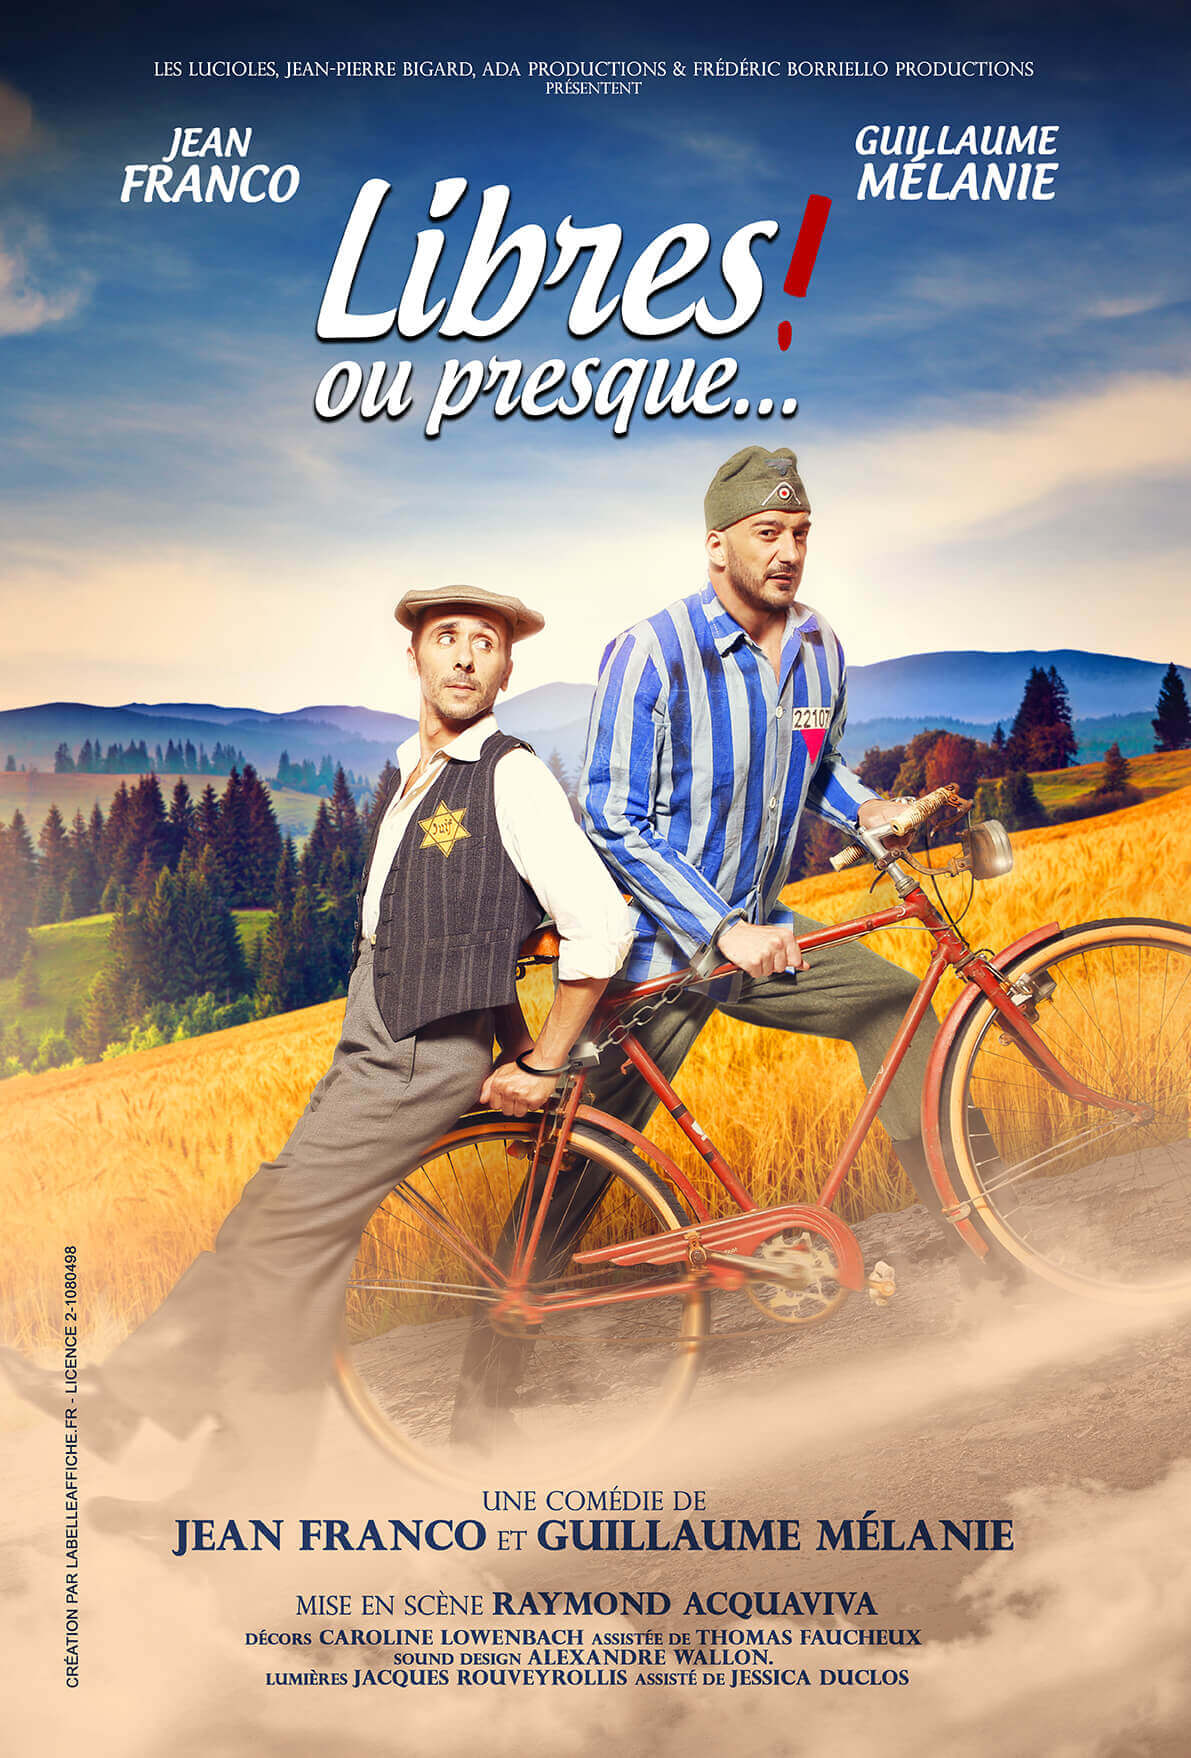 12 Creation par La belle affiche production Les Lucioles Jean Pierre Bigard ADA productions et frederic Borrielo productions avec Jean Franco et Guillaume Melanie